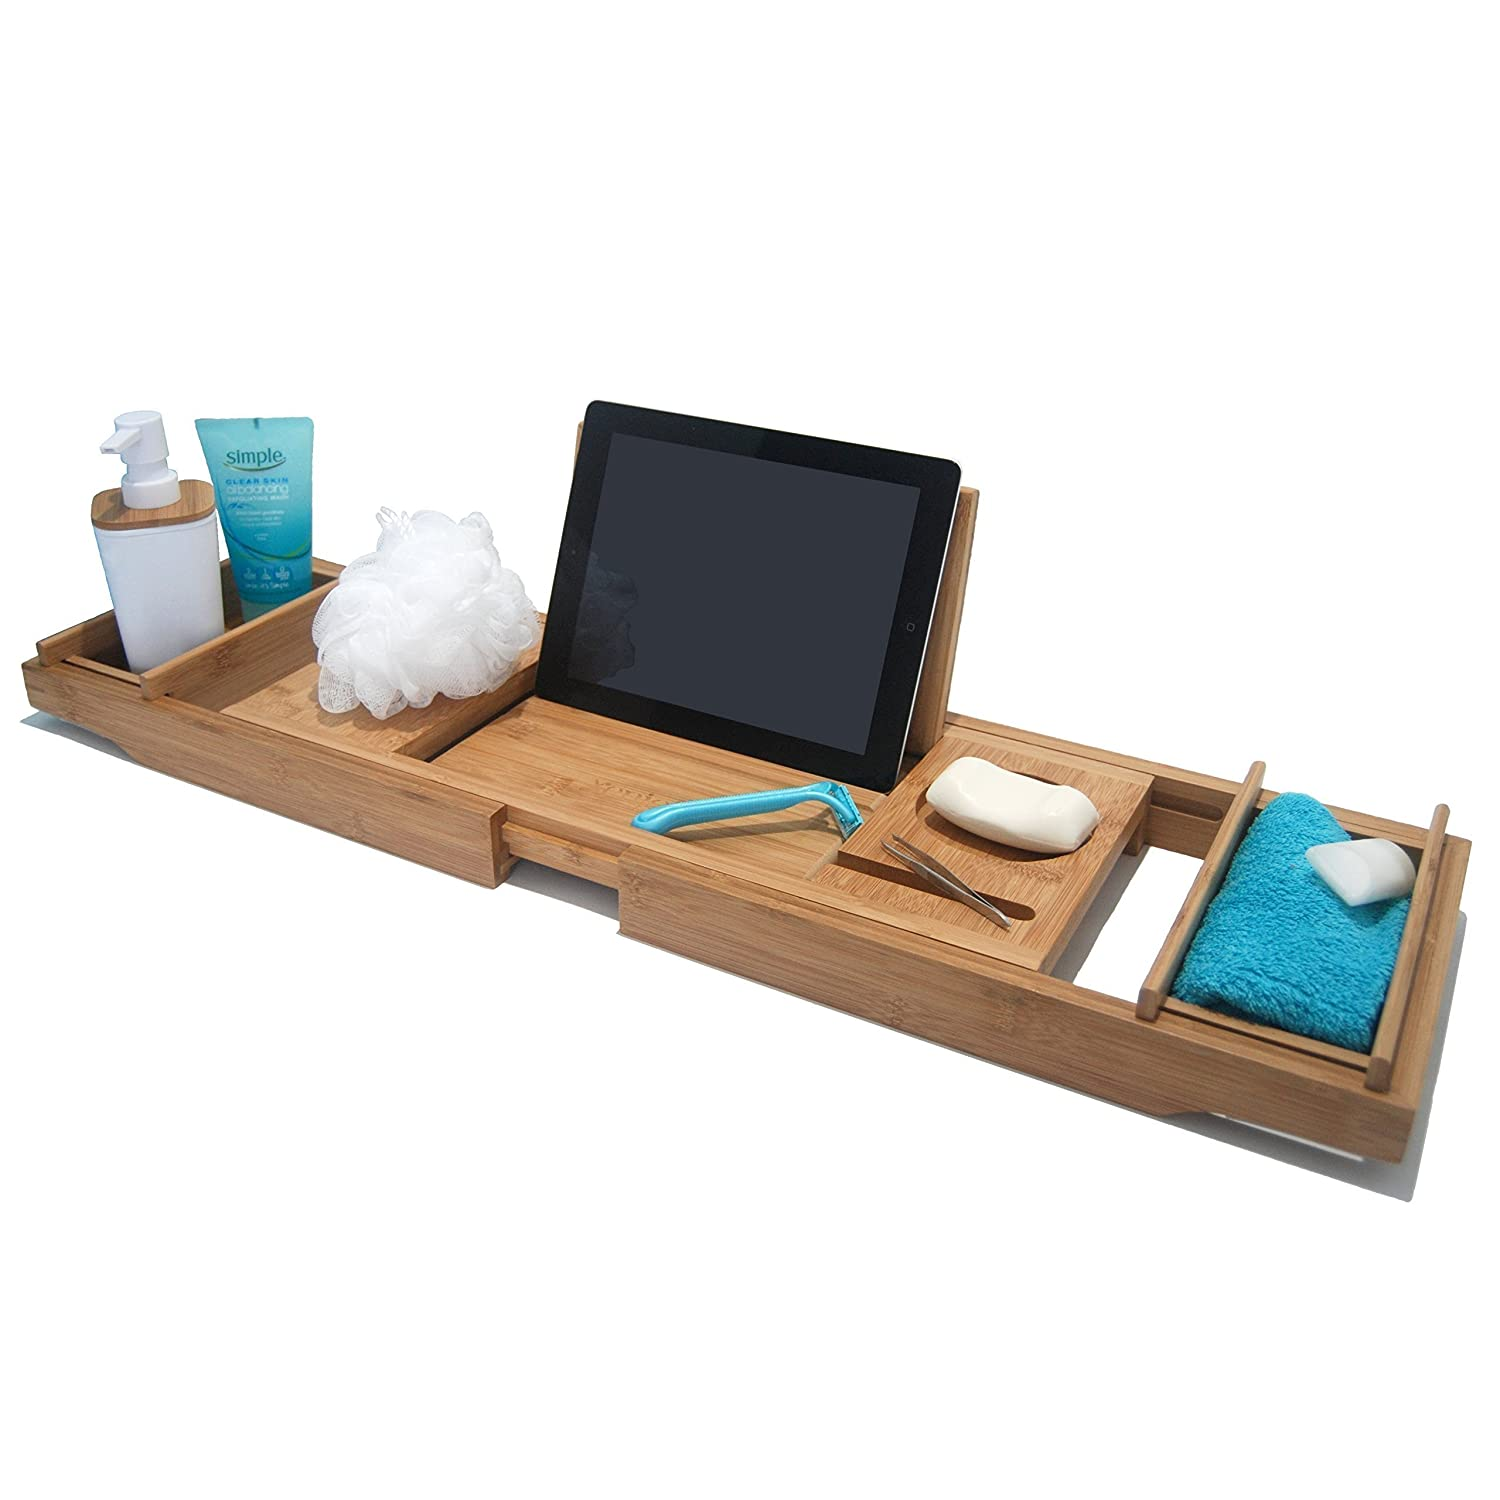 ADD A TOUCH OF STYLE TO YOUR BATHROOM - Our Luxury Bamboo Bathtub ...